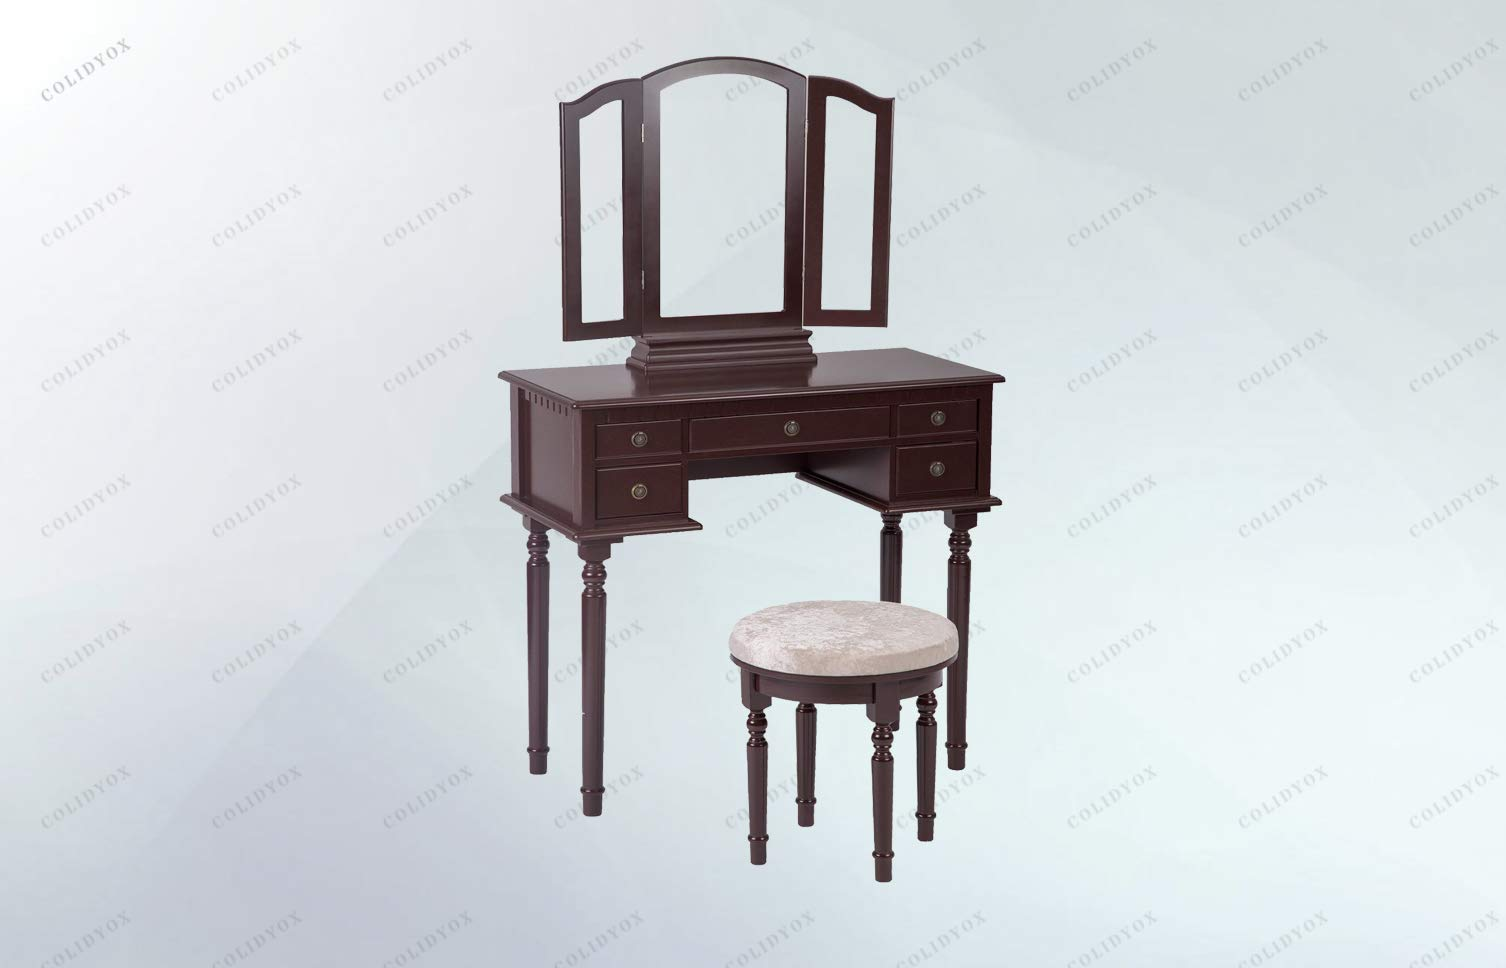 COLIDYOX>>>Cherry Makeup Vanity Table Stylish Vanity Table Comes with a tri-Folding Mirror That can Help You View Your face or Hair from Multiple Angles Wood Construction with an Elegant